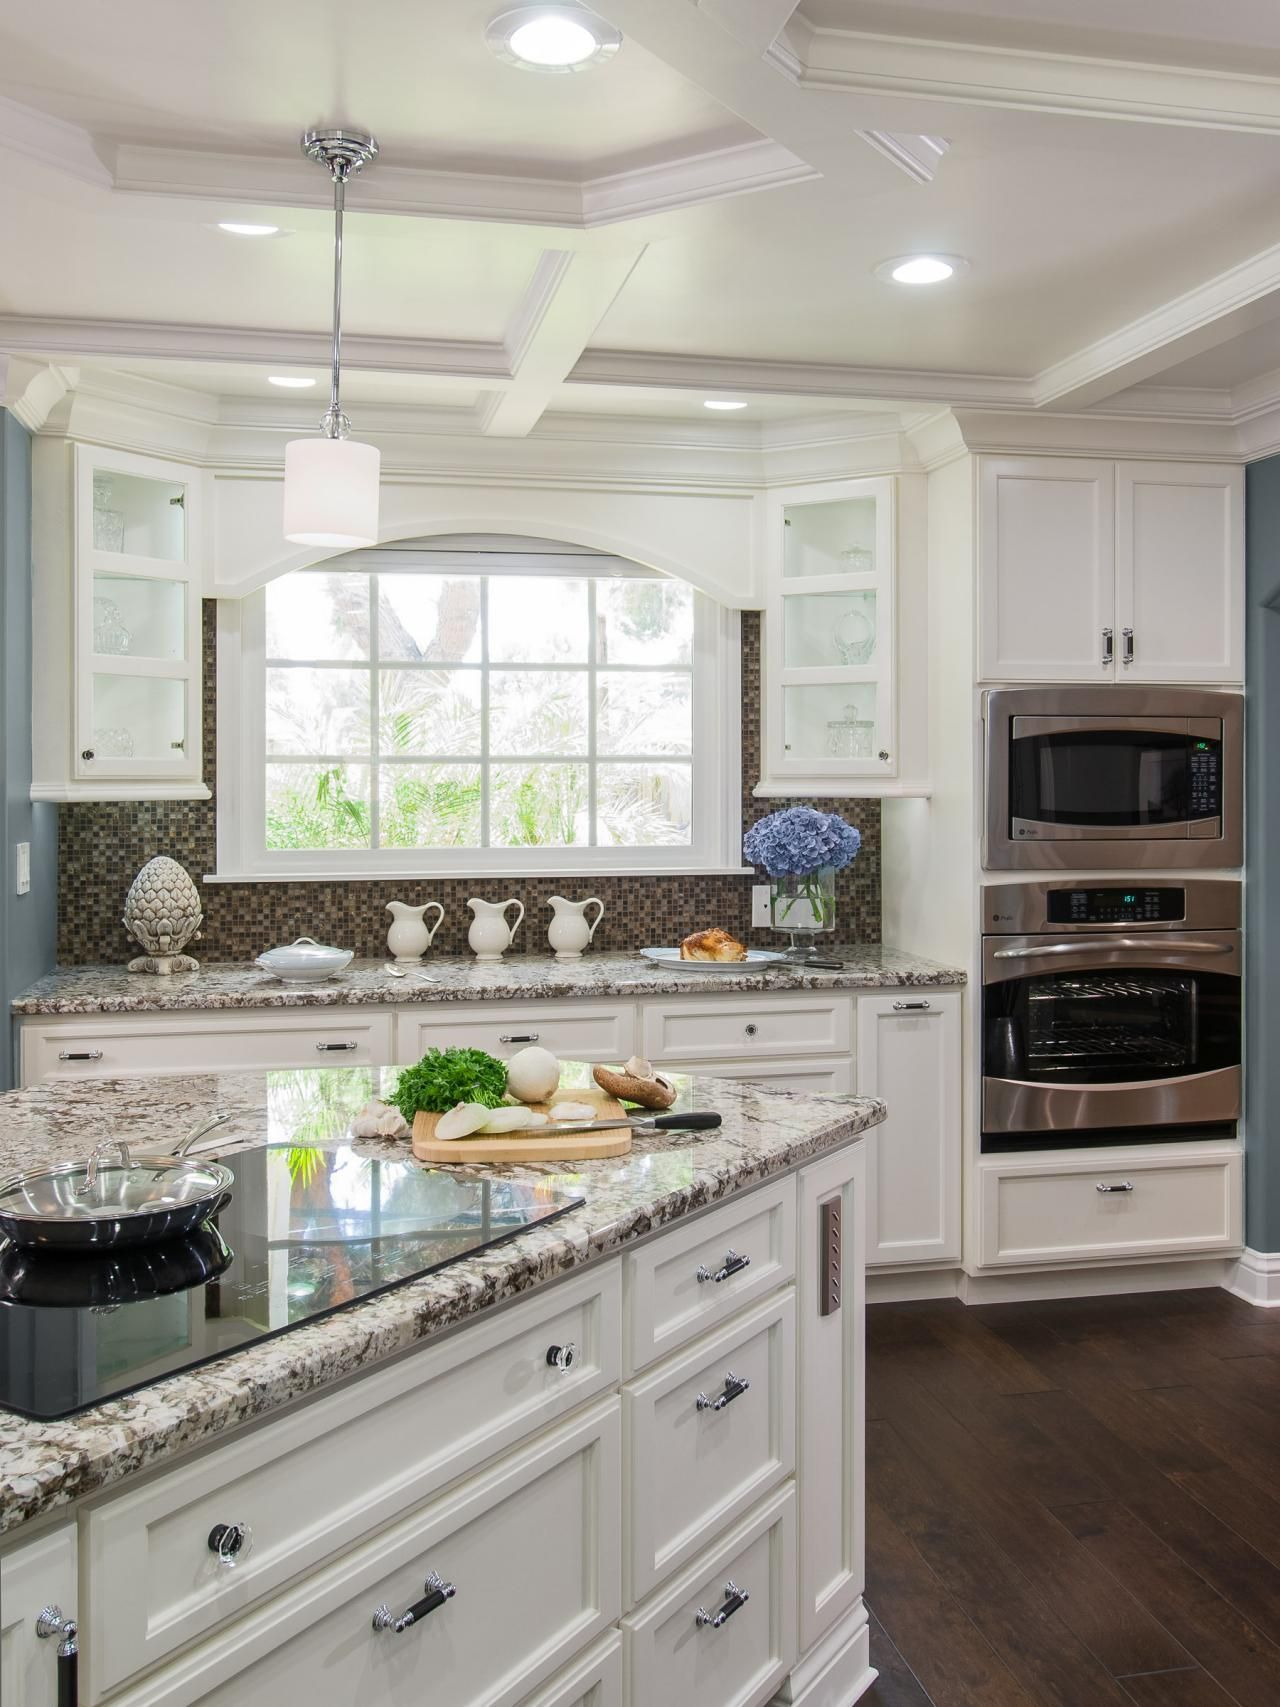 Kitchen with white cabinets and induction cooktop buying guide for kitchen induction cooktops